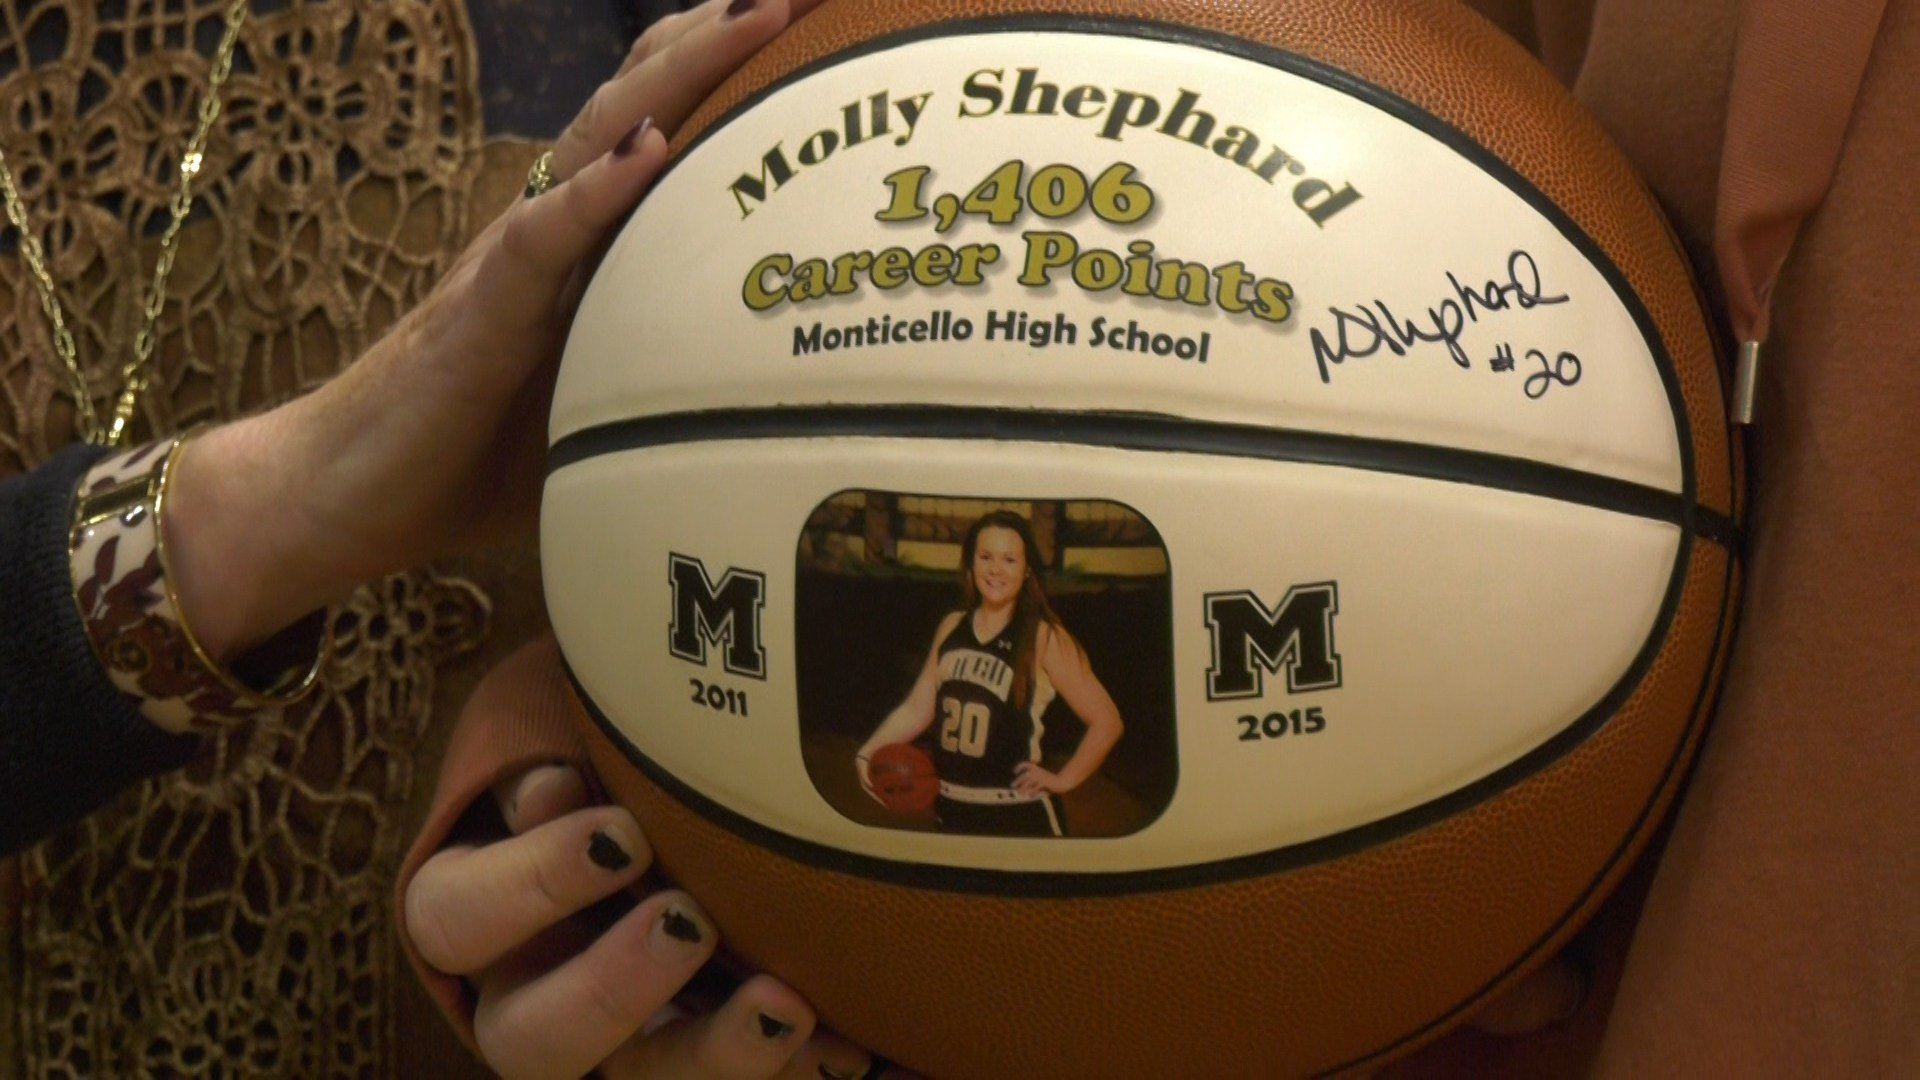 Monticello HS honored Molly Shephard as the school's all-time leading girls scorer